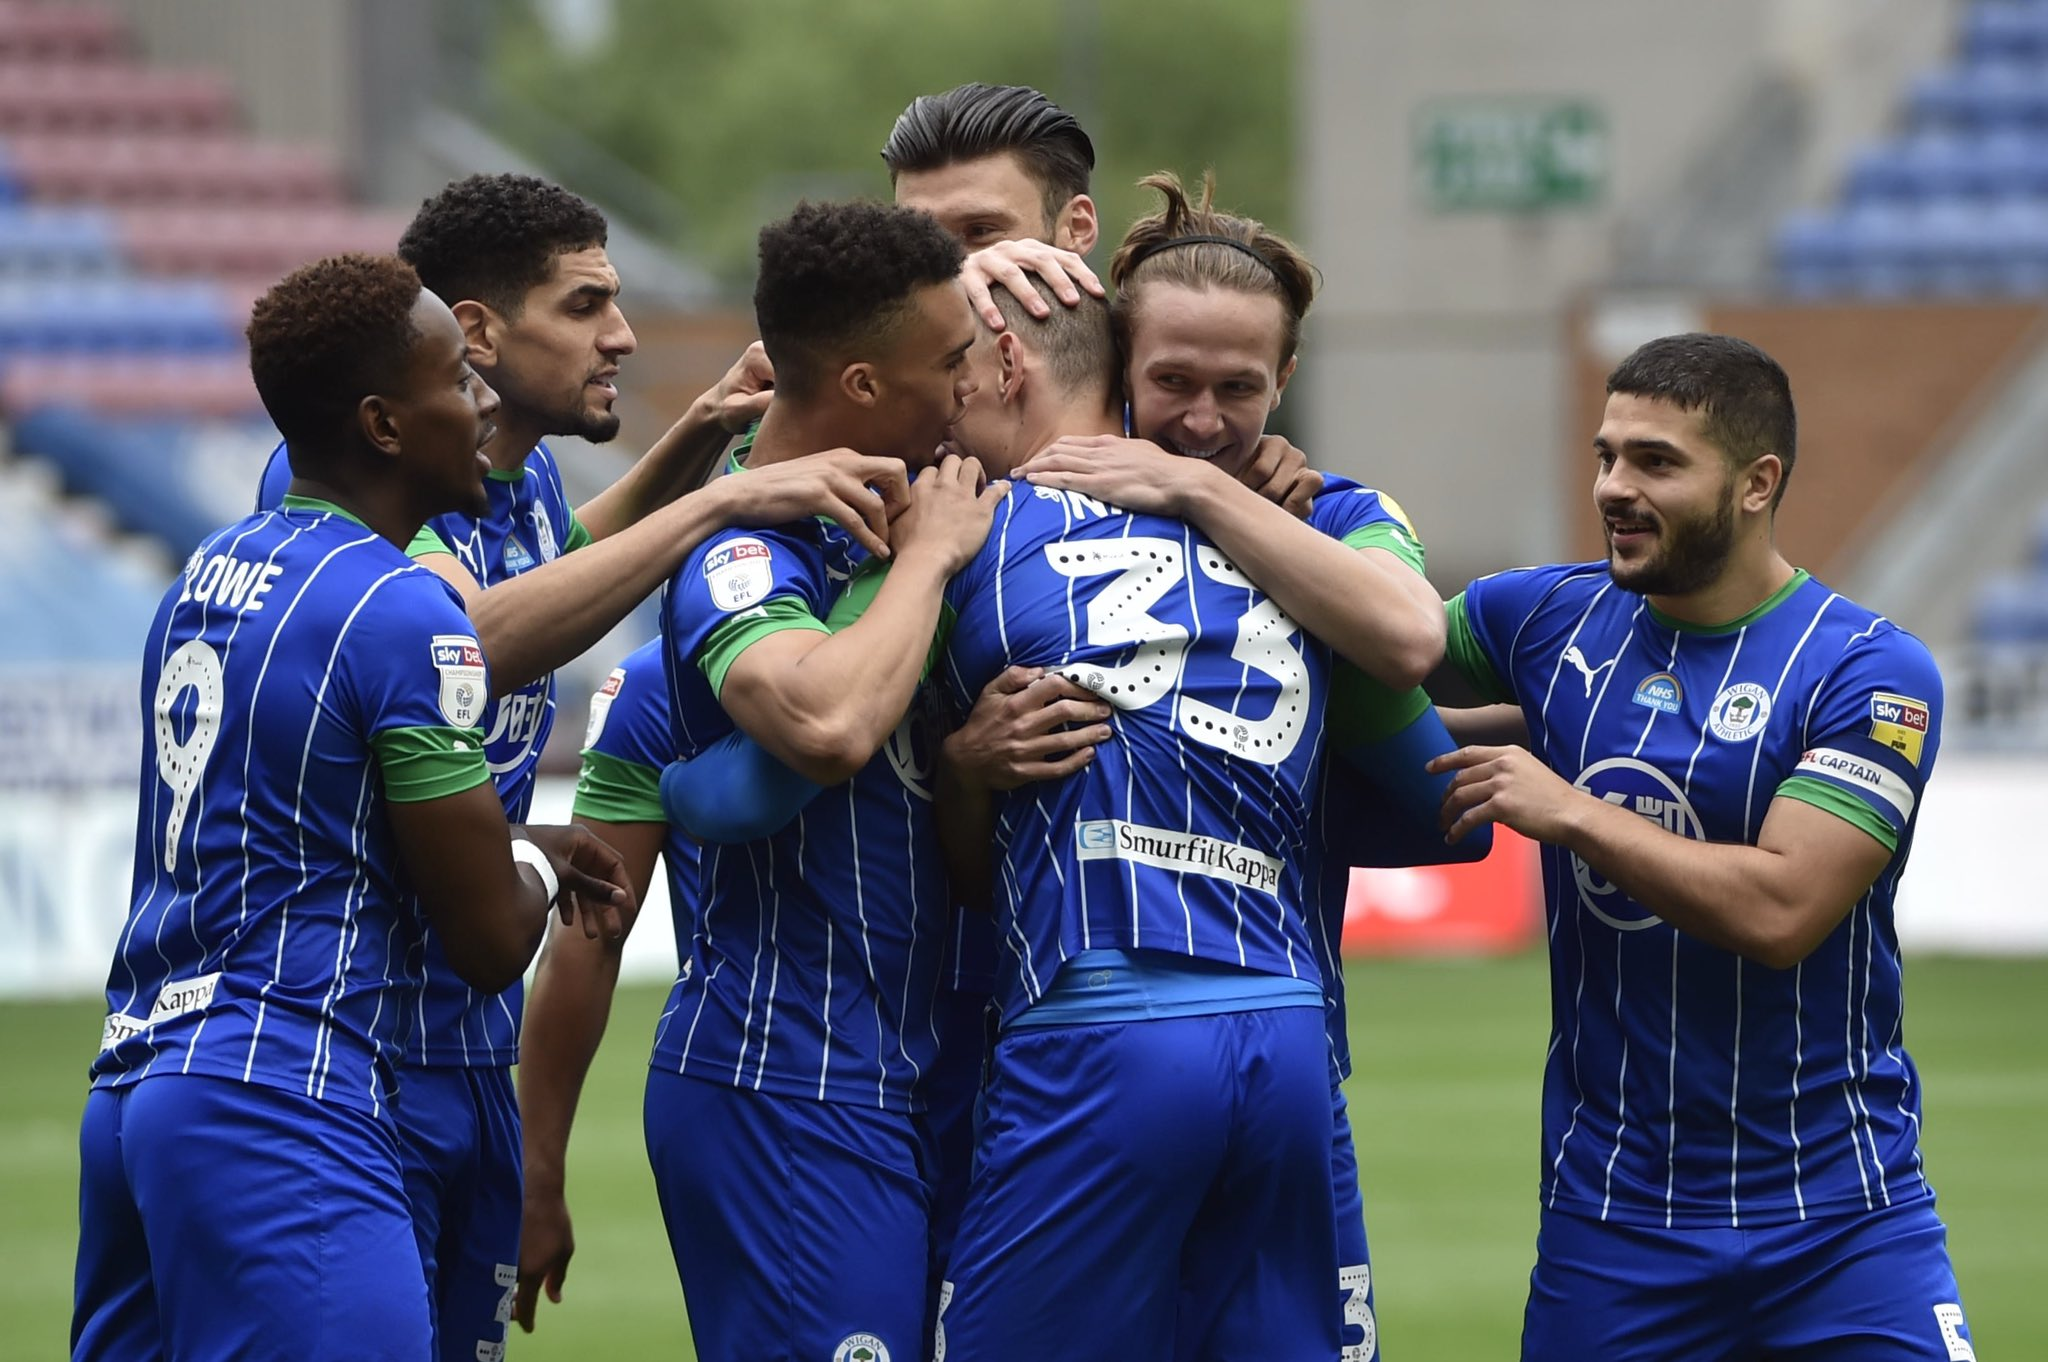 Eagles Euro Roundup: Balogun Helps WiganBag Historic Win Vs Hull; Ajayi's West Brom Slip Up In Promotion Race